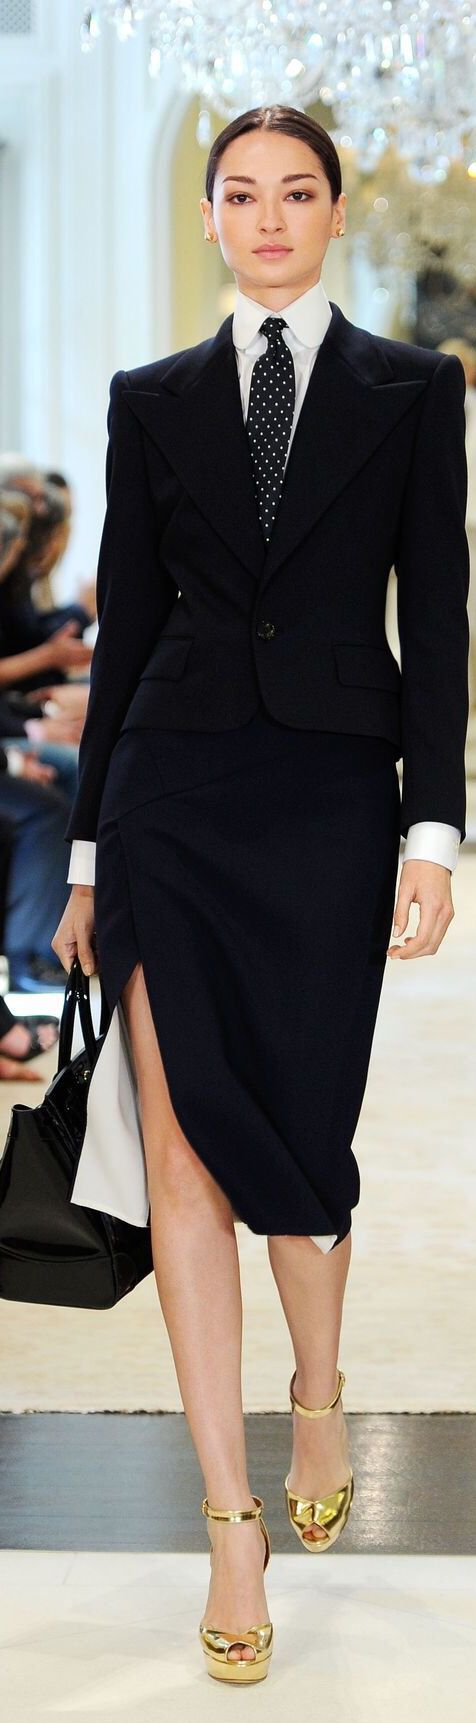 Ralph Lauren Resort 2015 - I absolutely adore this costume!!